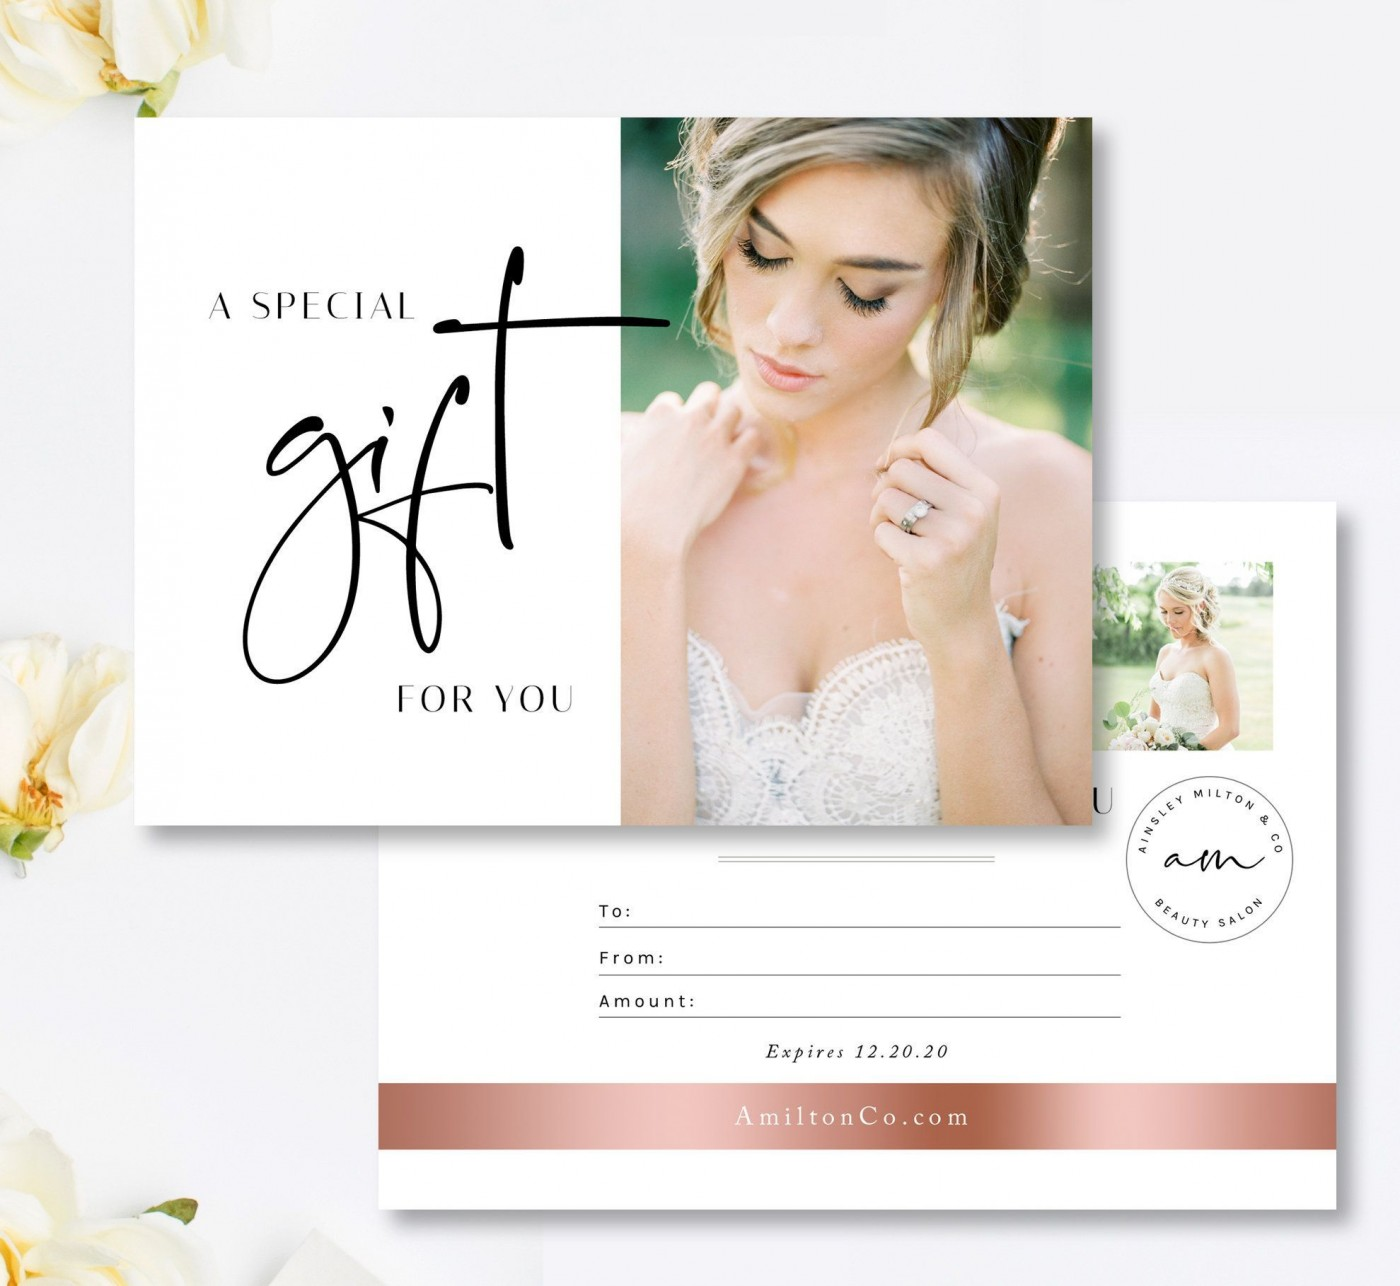 001 Magnificent Salon Gift Certificate Template High Def 1400